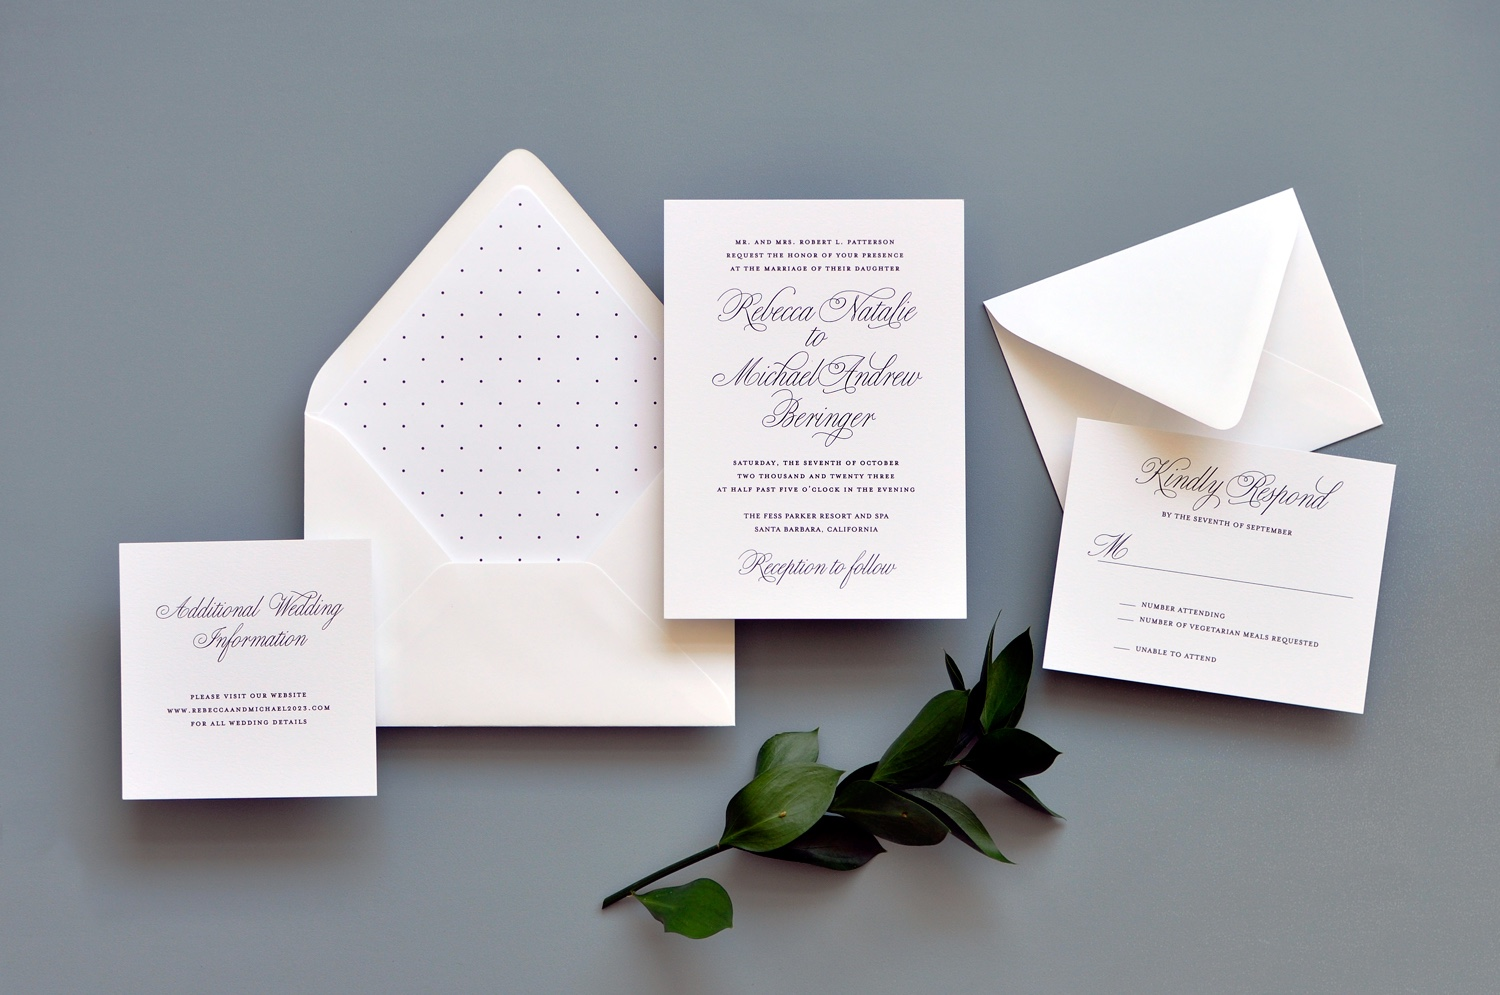 A formal script is the highlight of this traditional wedding invitation.  A subtle polka dot envelope liner adds a whimsical flare.